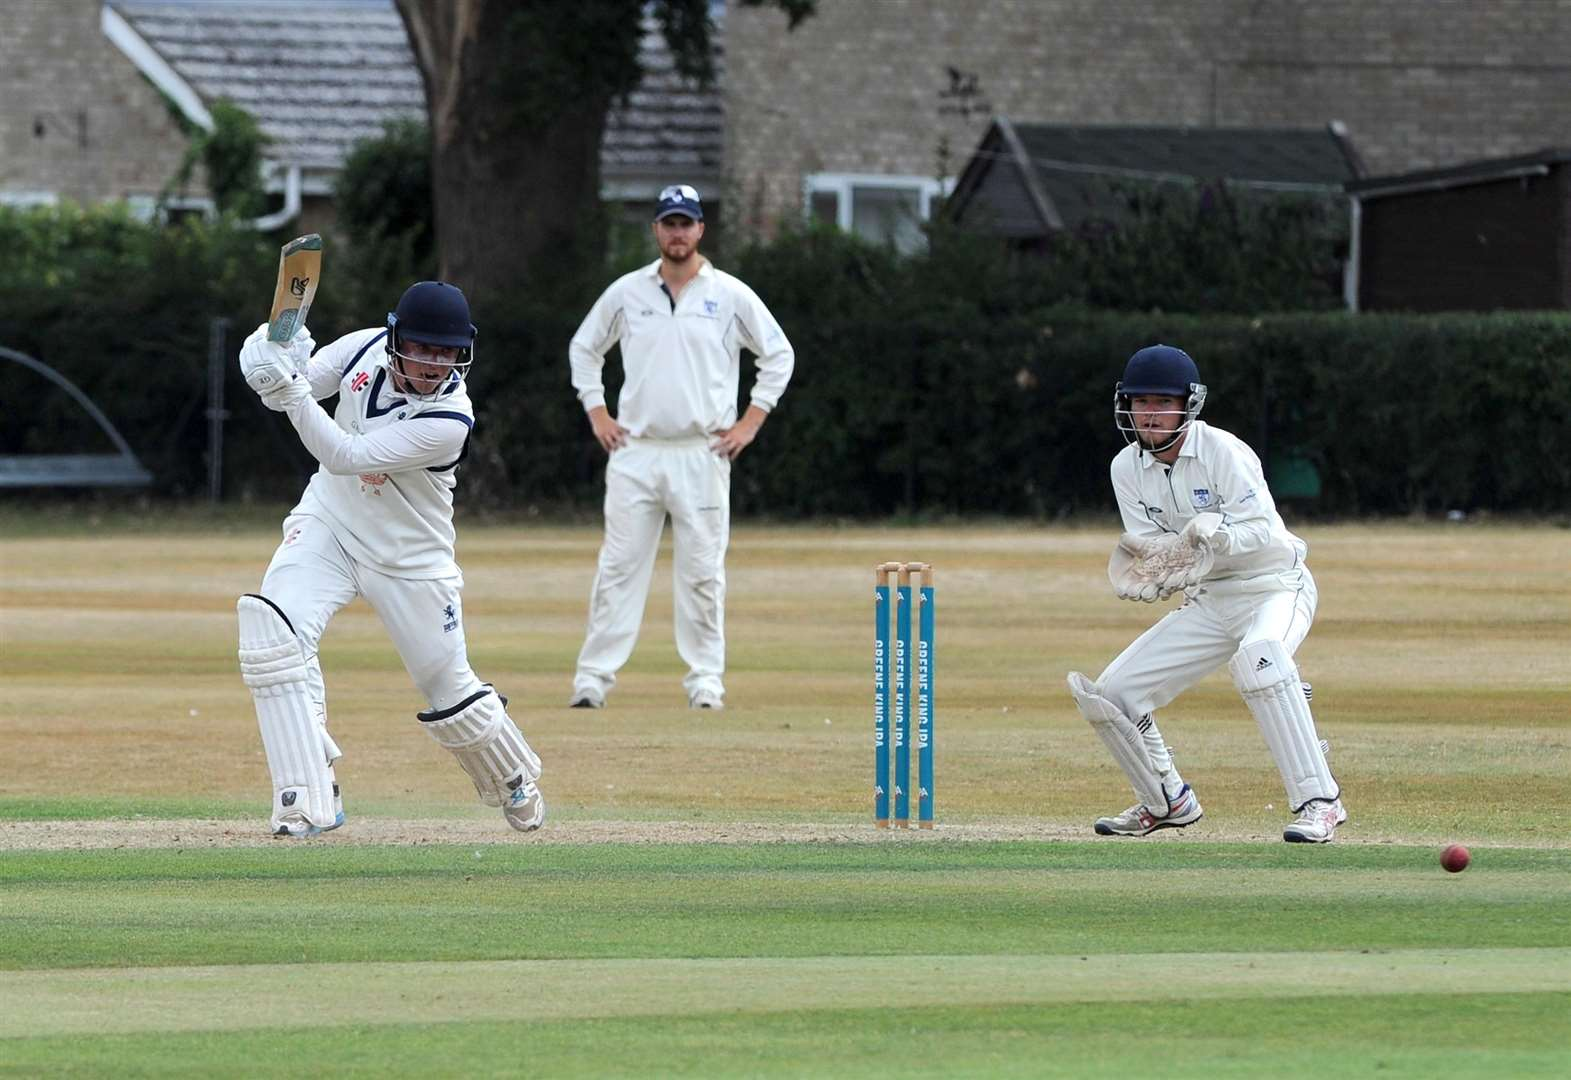 Beaumont's rapid 57 eases Suffolk to victory